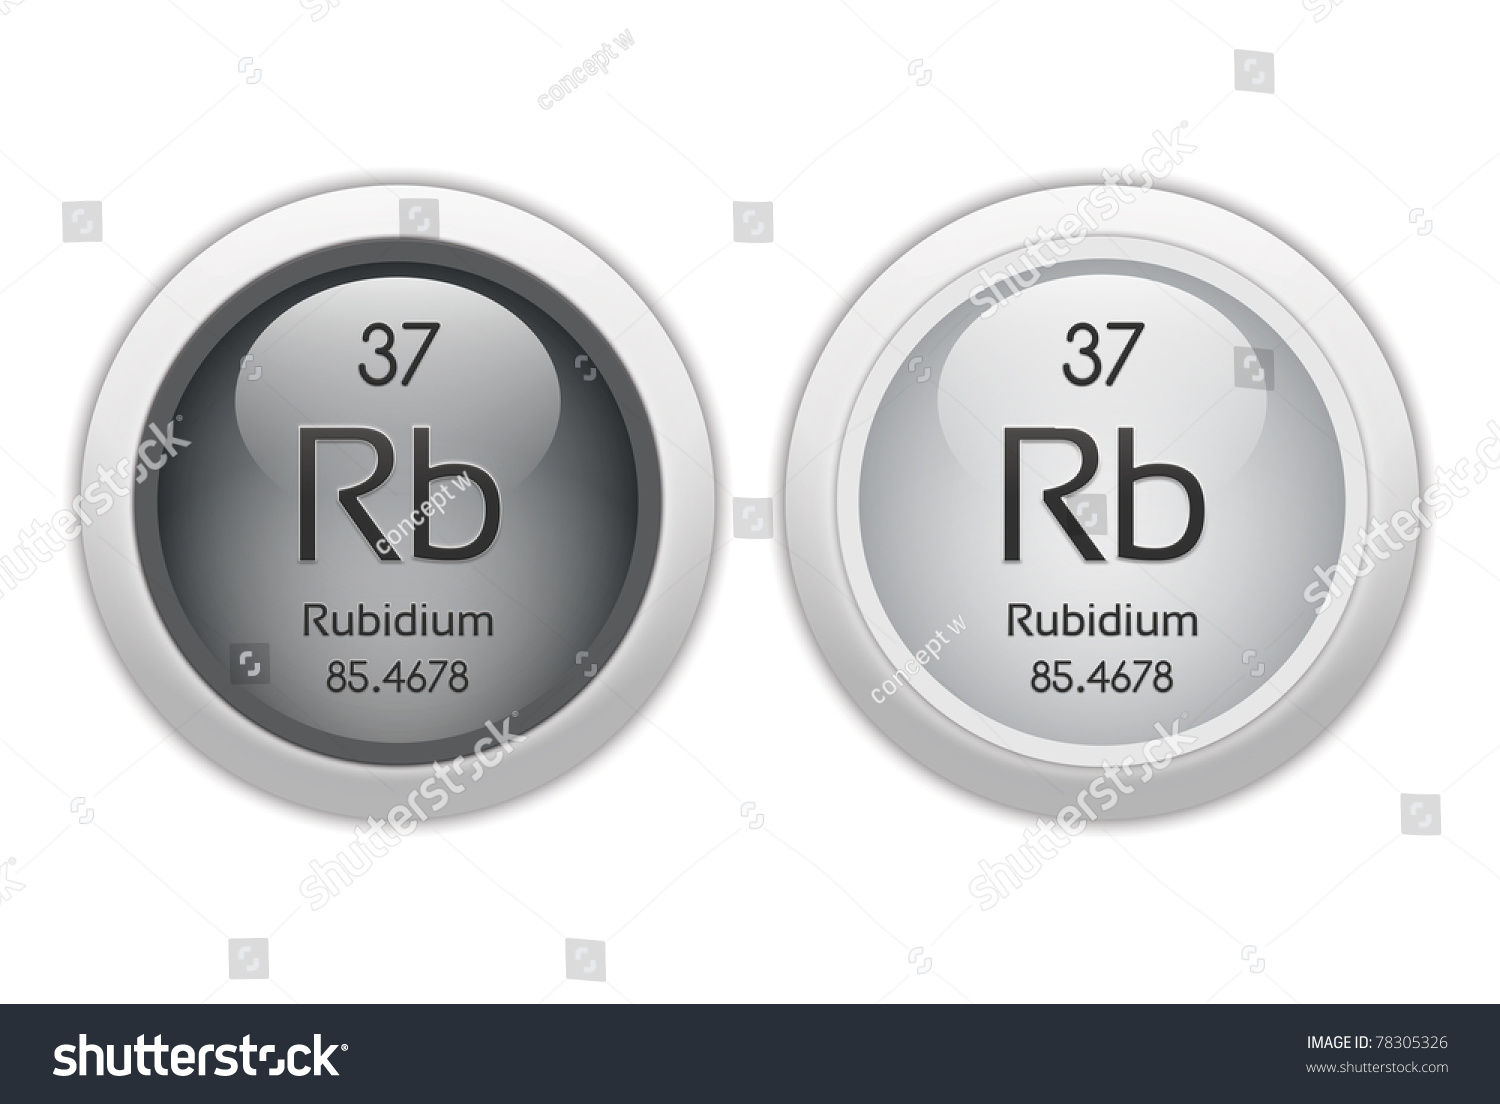 Rubidium two web buttons chemical element stock illustration rubidium two web buttons chemical element with atomic number 37 it is represented buycottarizona Choice Image